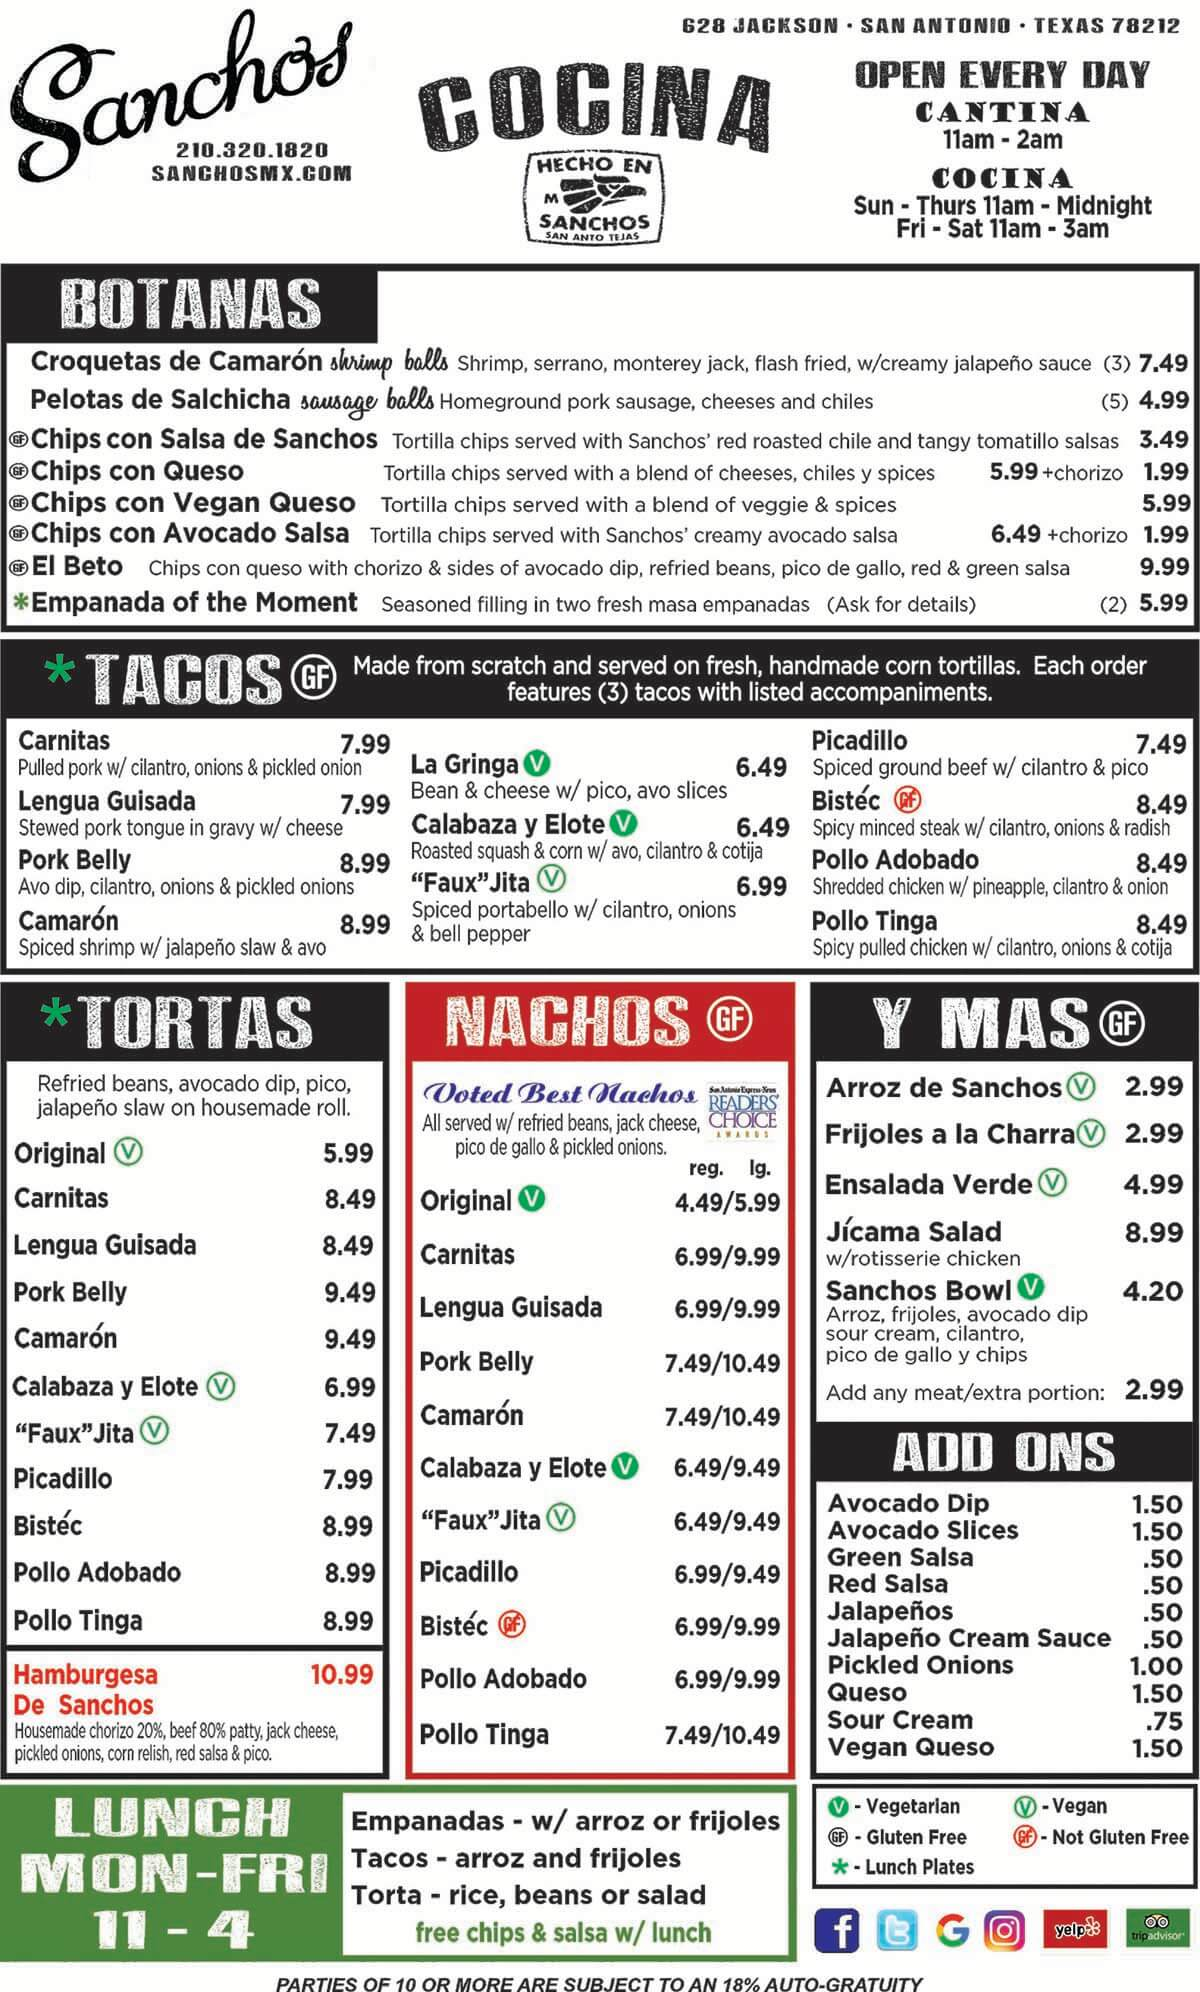 Sanchos Food Menu 2019